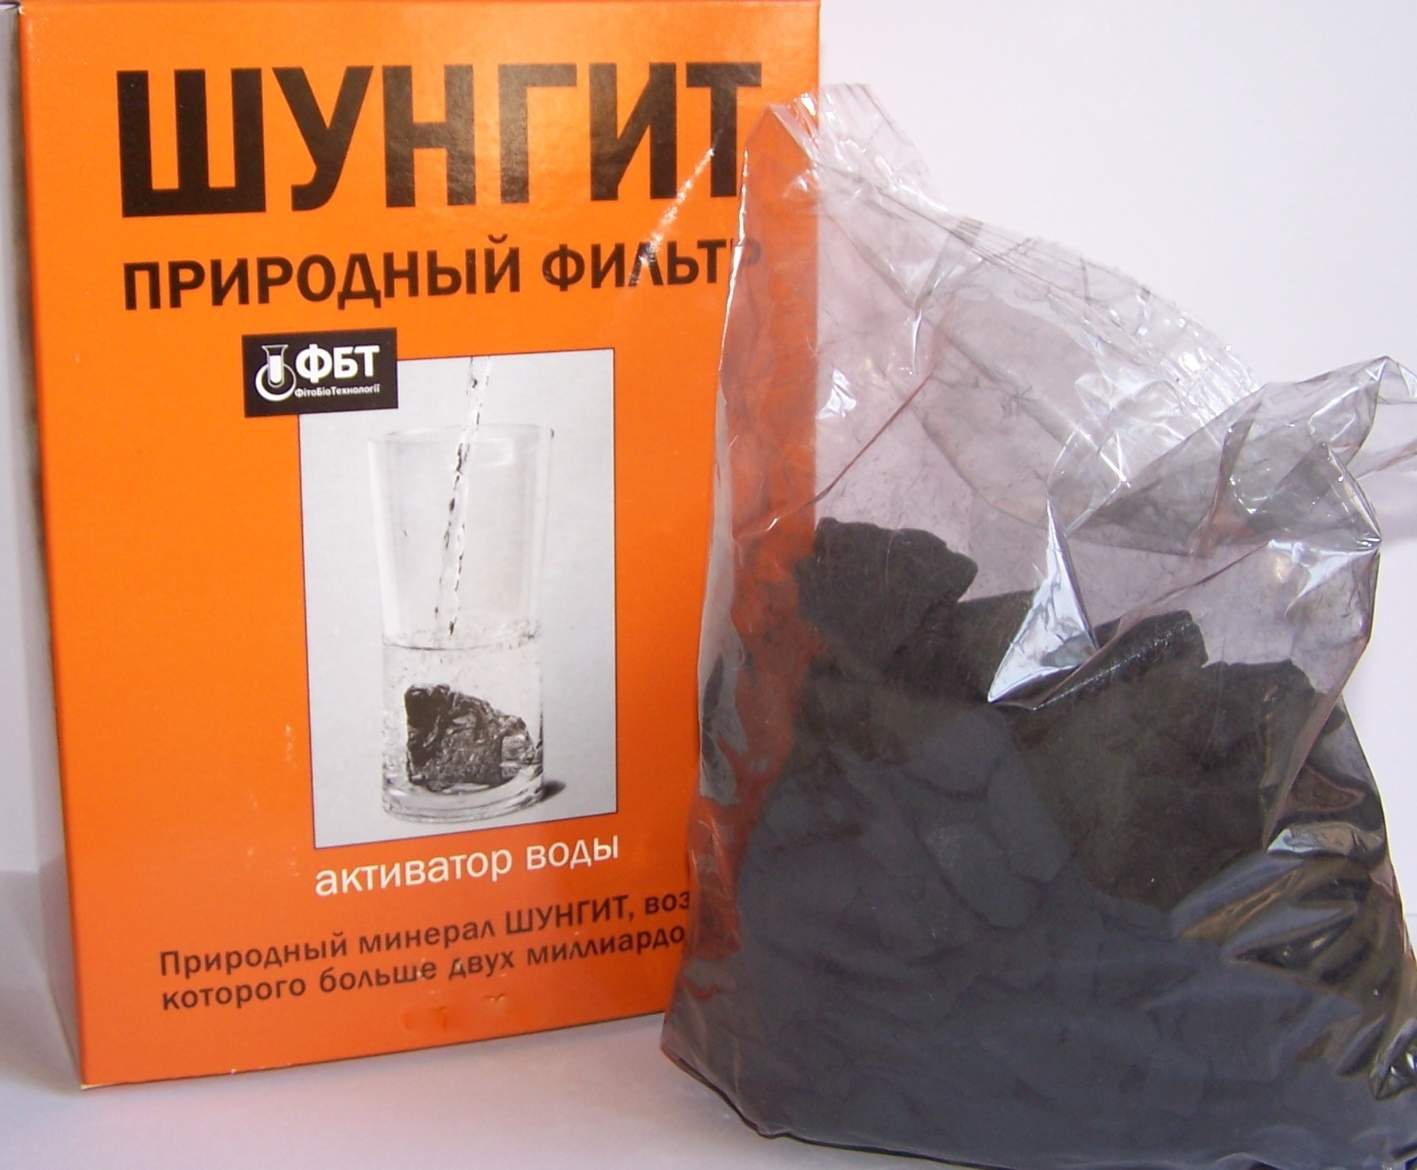 SHUNGITE UNIQUE NATURAL WATER CLEANER, HEALING STONE 0.5kg 1.1Lbs